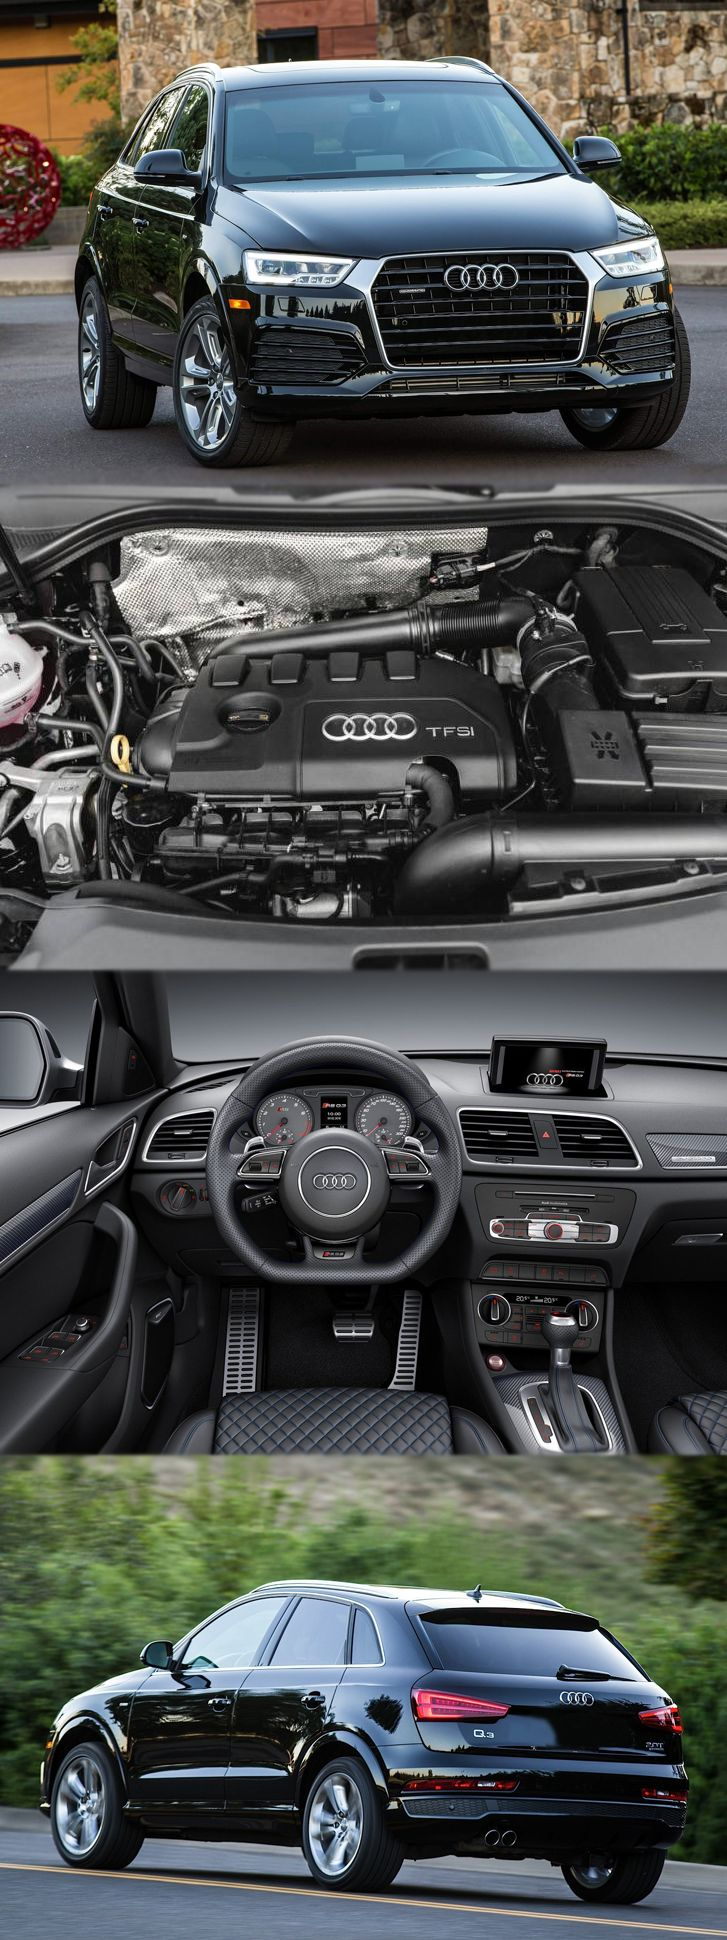 How #Audi #Q3 #Engine will Make you Crazy? For more information visit link: http://www.enginecompare.co.uk/blog/category/audi/